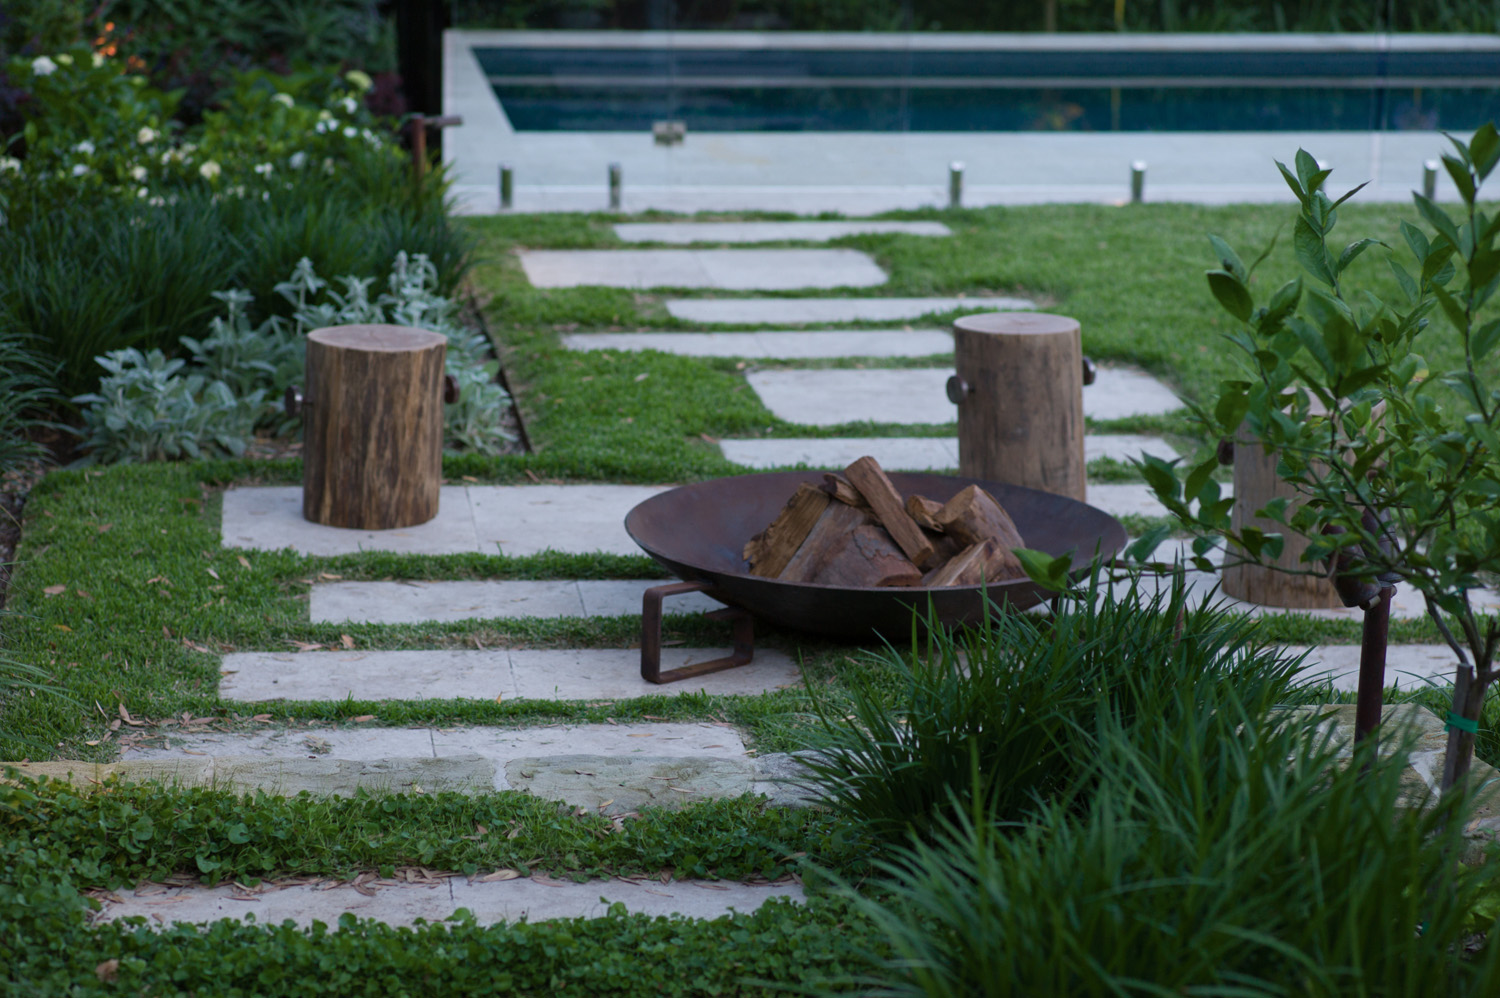 PSS024_Good Manors Landscaping_L1041629